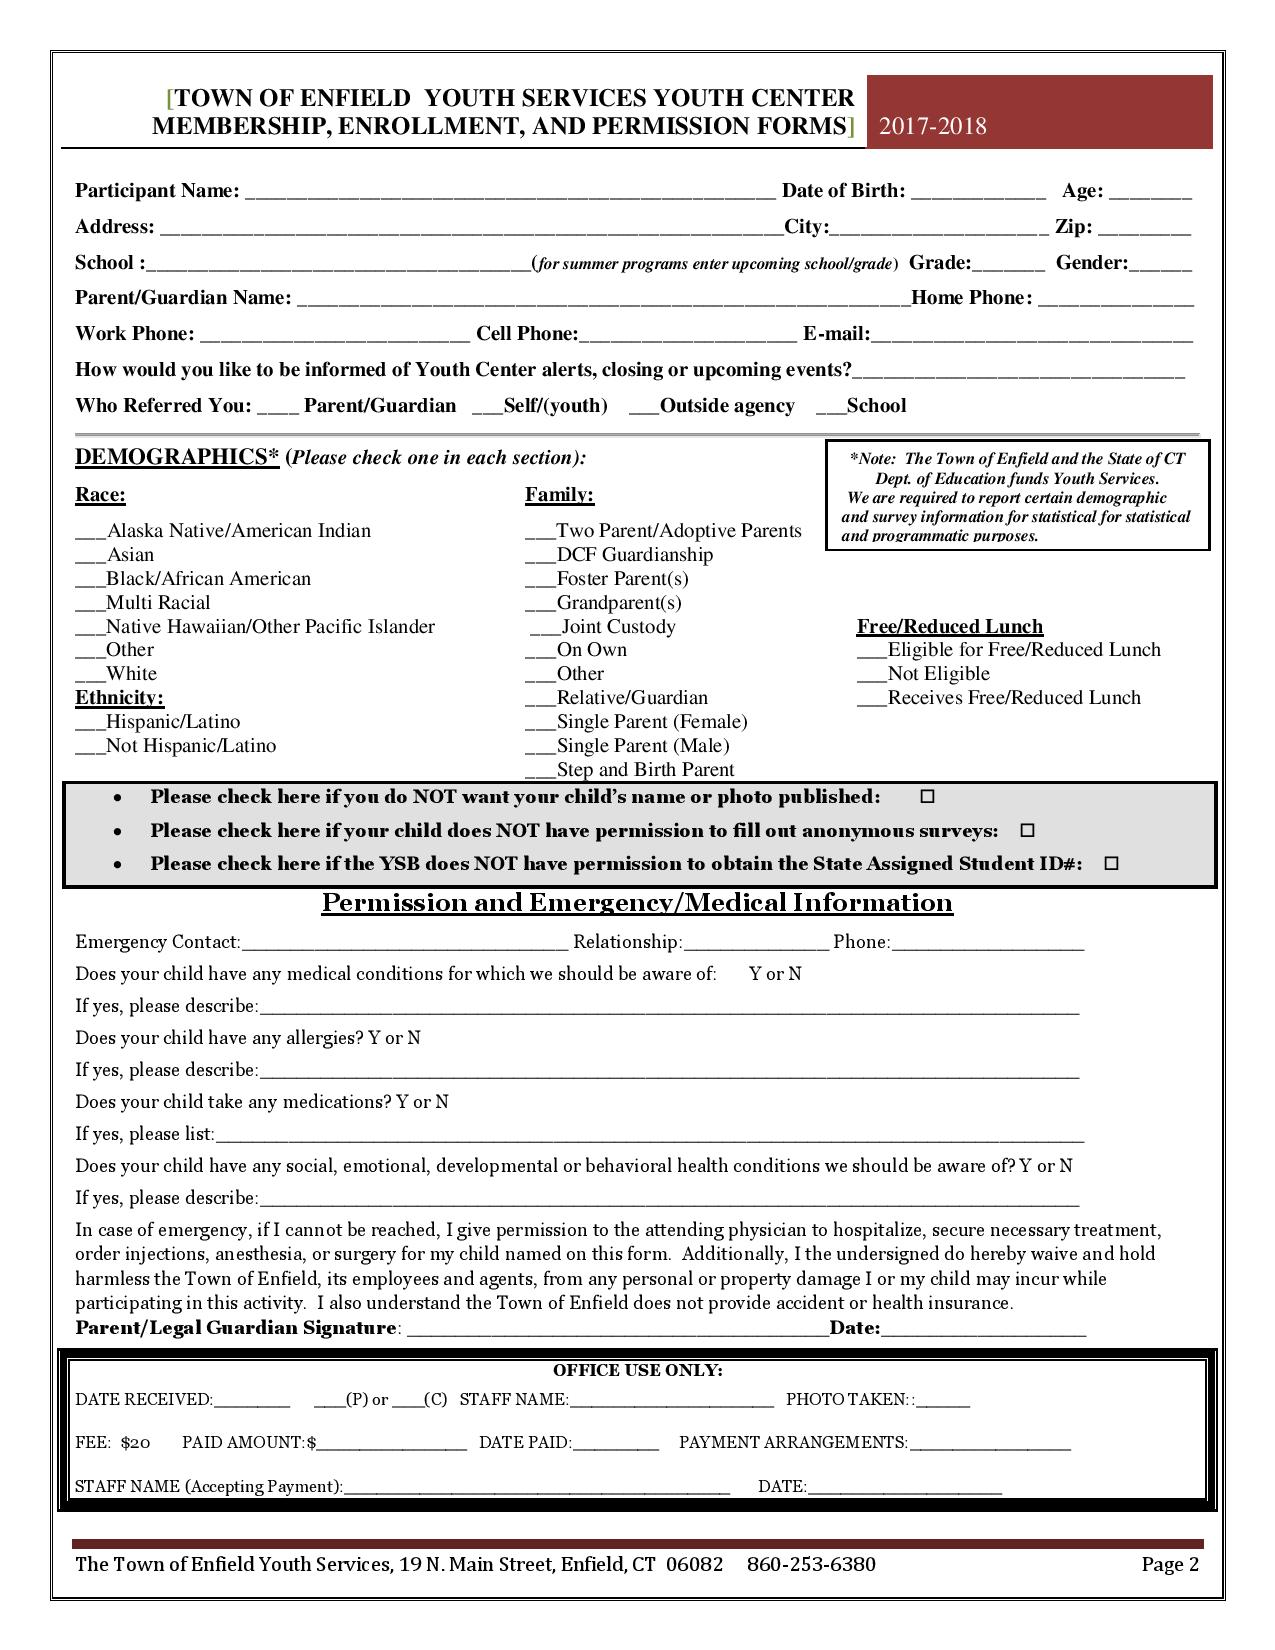 Youth center packet 17 18-page-002